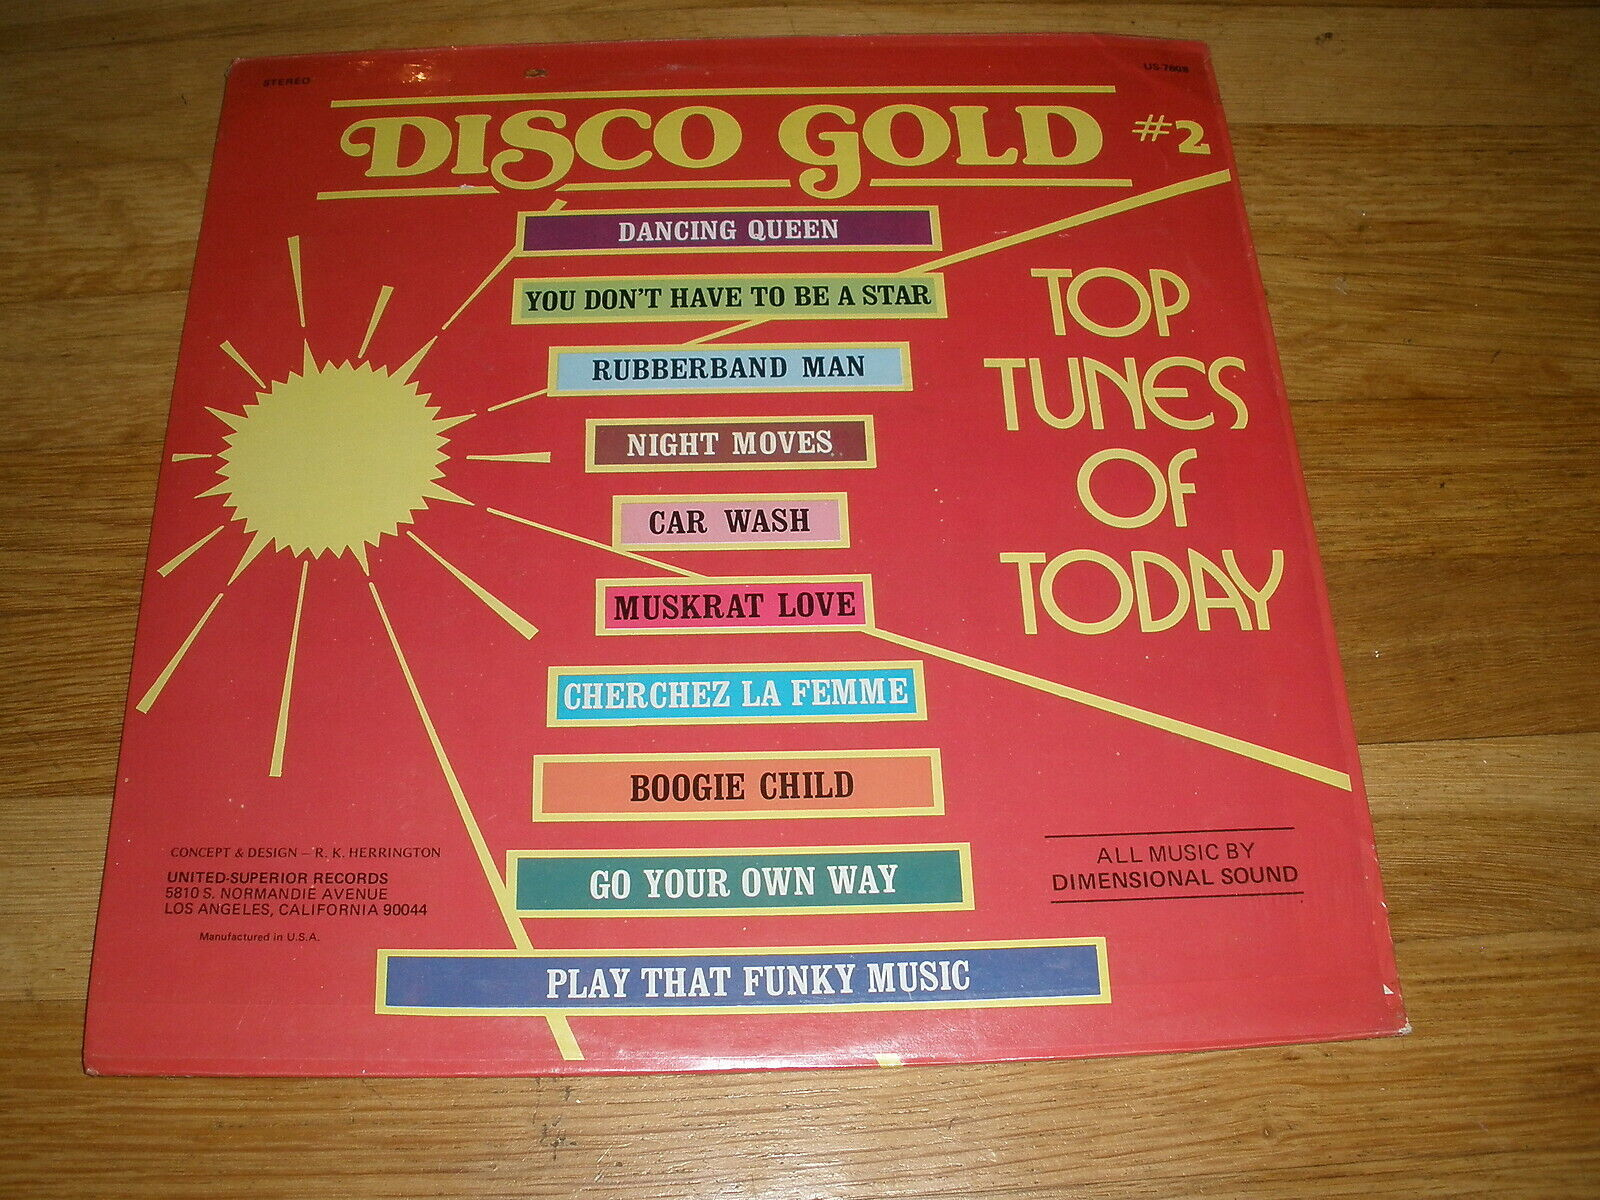 DISCO GOLD #2 top tunes of today LP Record - Sealed